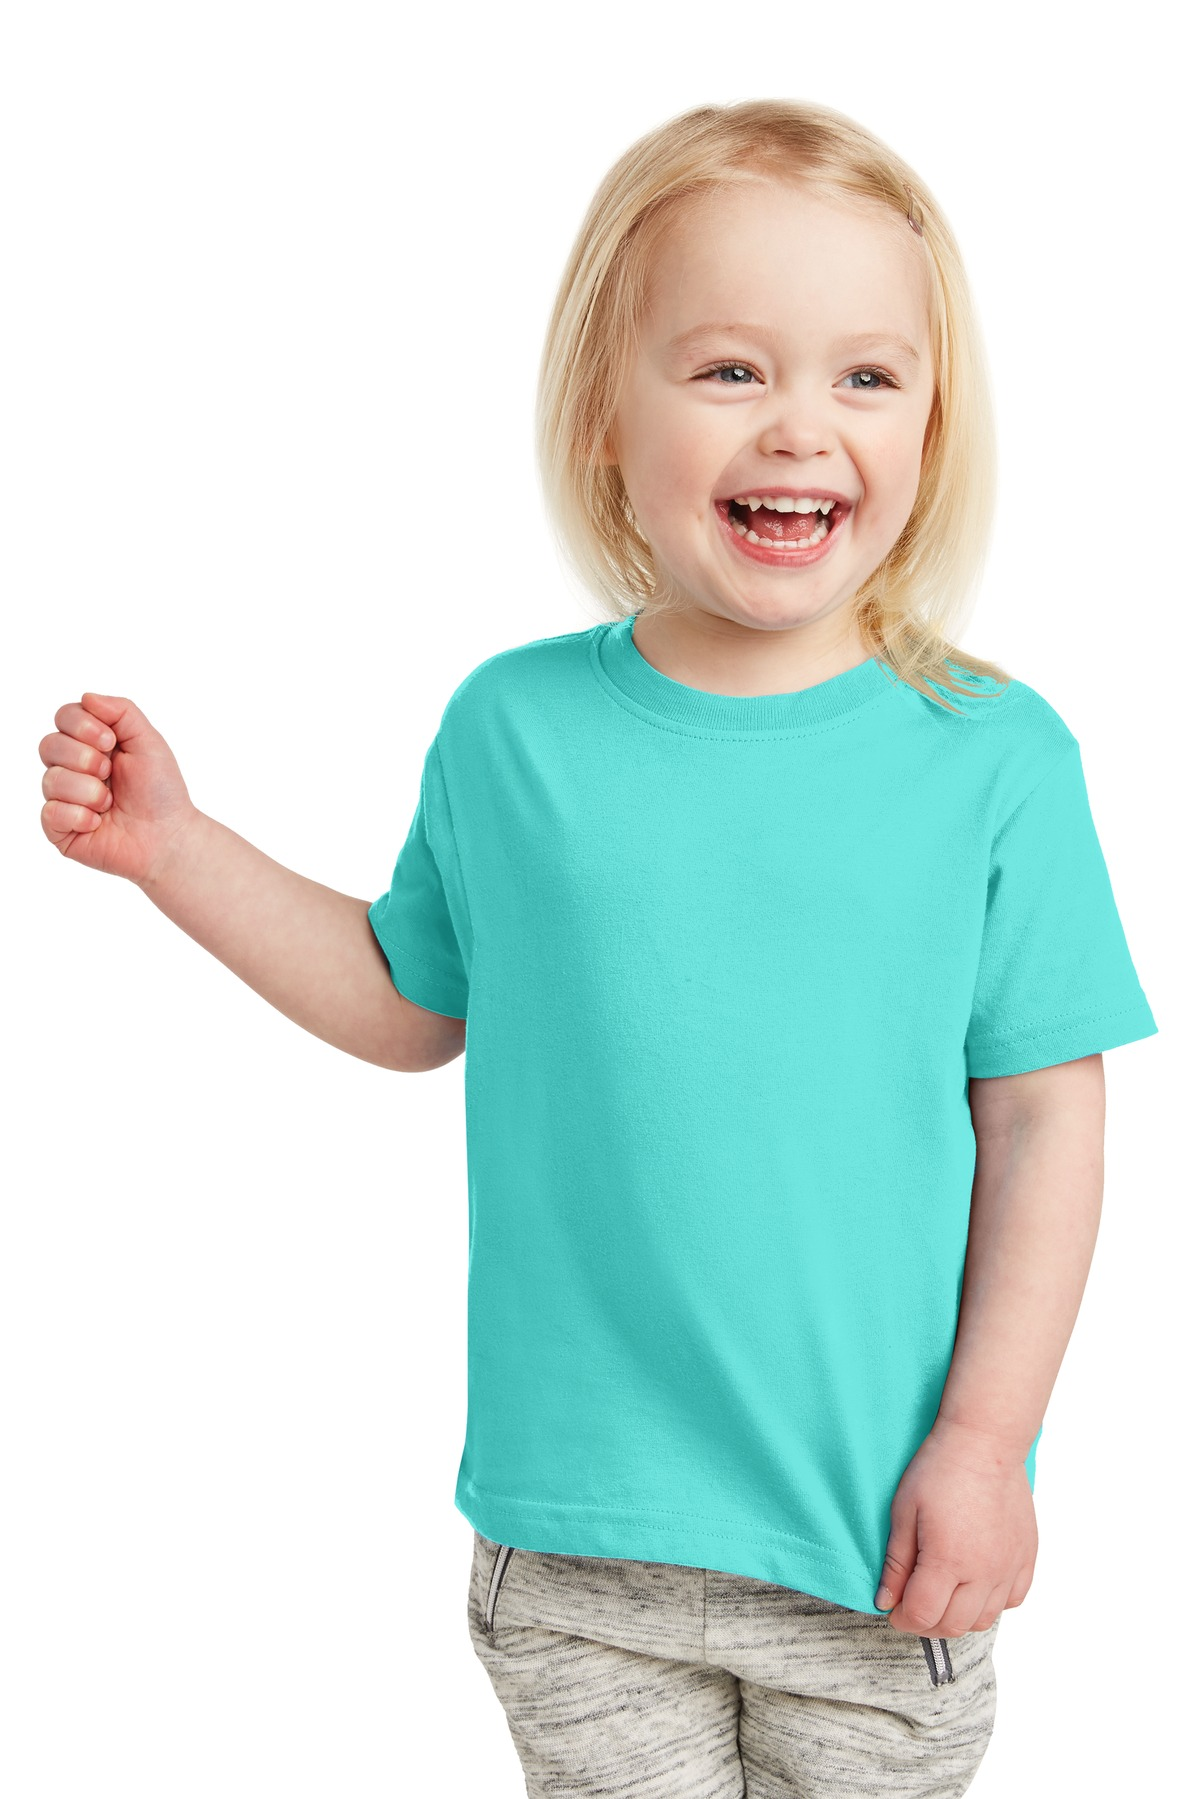 Rabbit Skins Toddler Fine Jersey Ribbed Collar T-Shirt